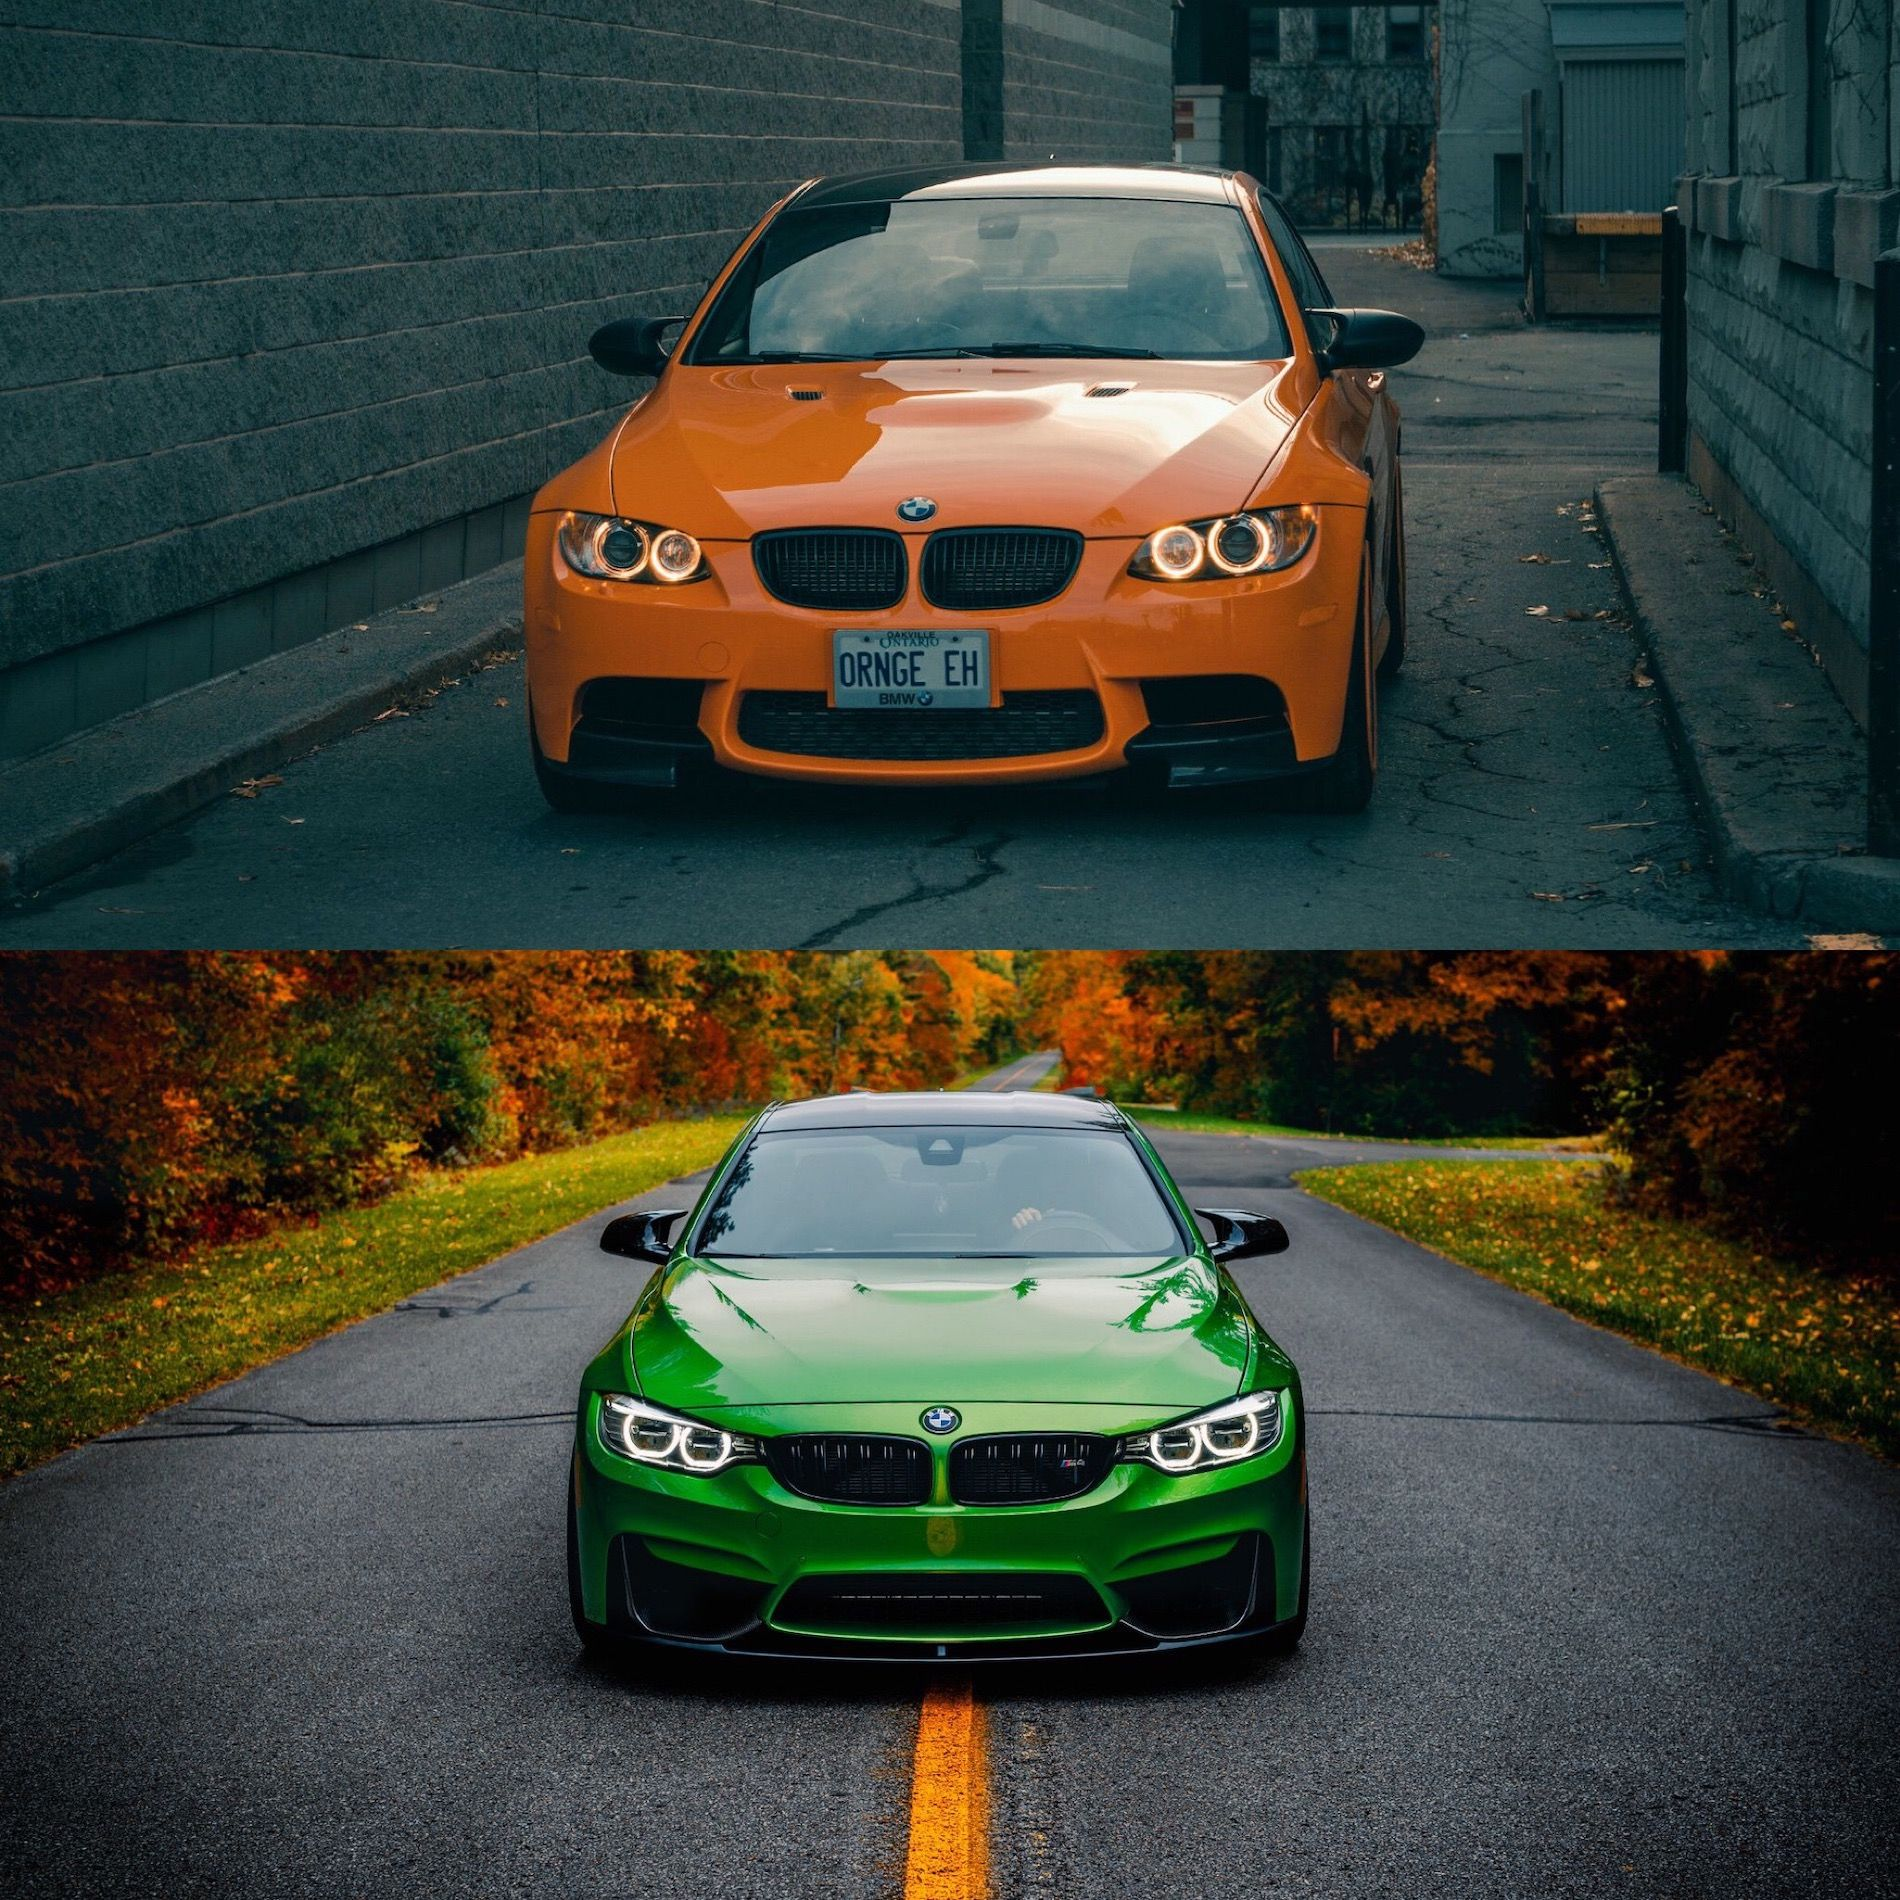 Switching From E92 M3 To F82 M4 Competition: How Does It